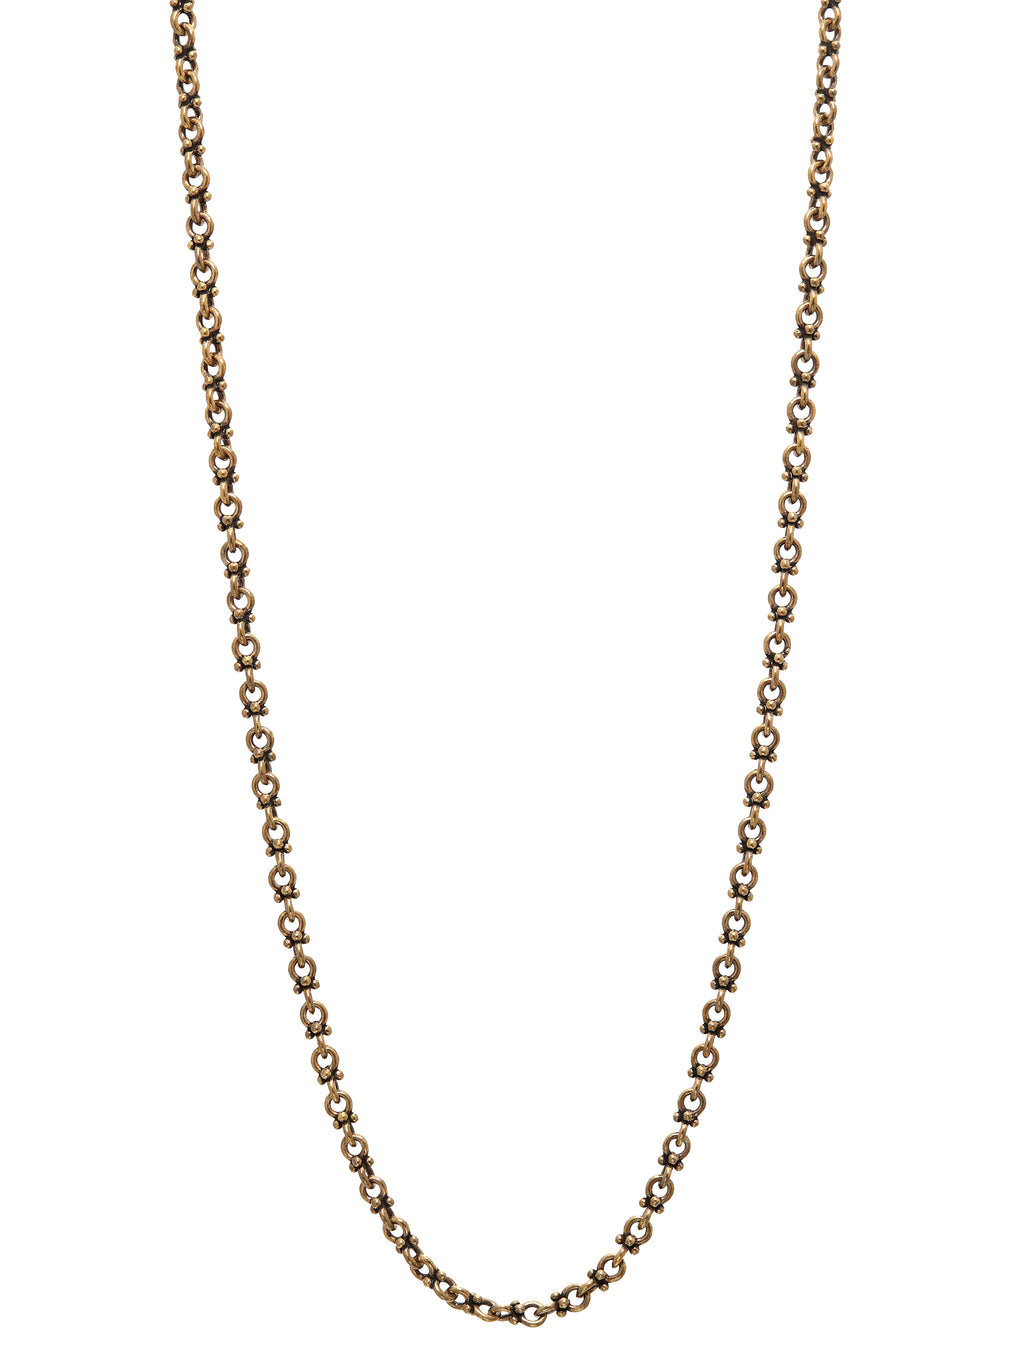 John Varvatos Artisinal Brass Link Necklace